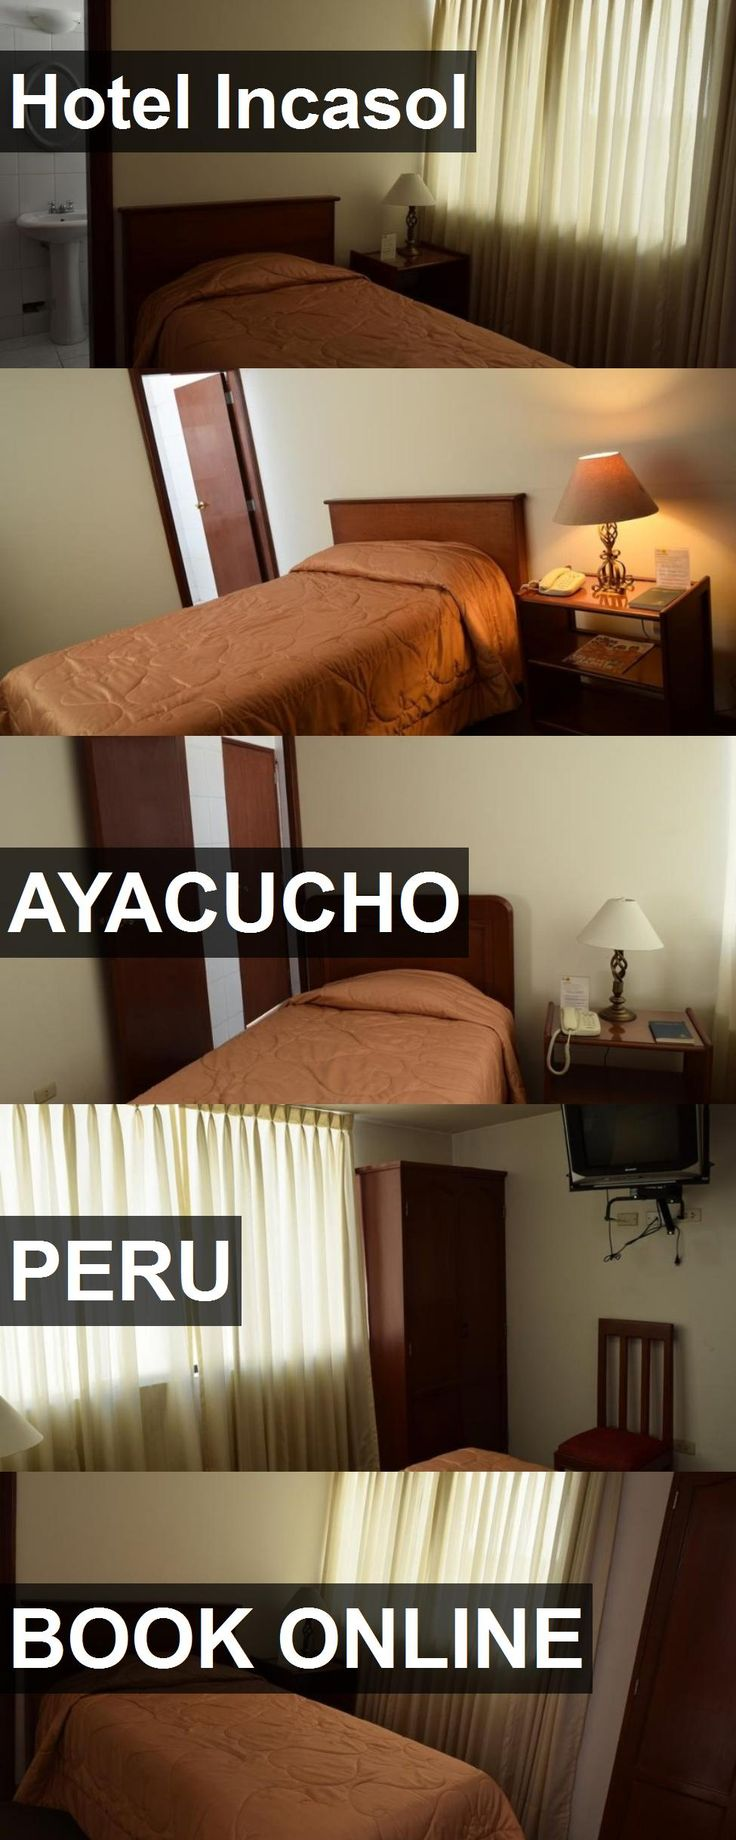 Hotel Incasol in Ayacucho, Peru. For more information, photos, reviews and best prices please follow the link. #Peru #Ayacucho #travel #vacation #hotel